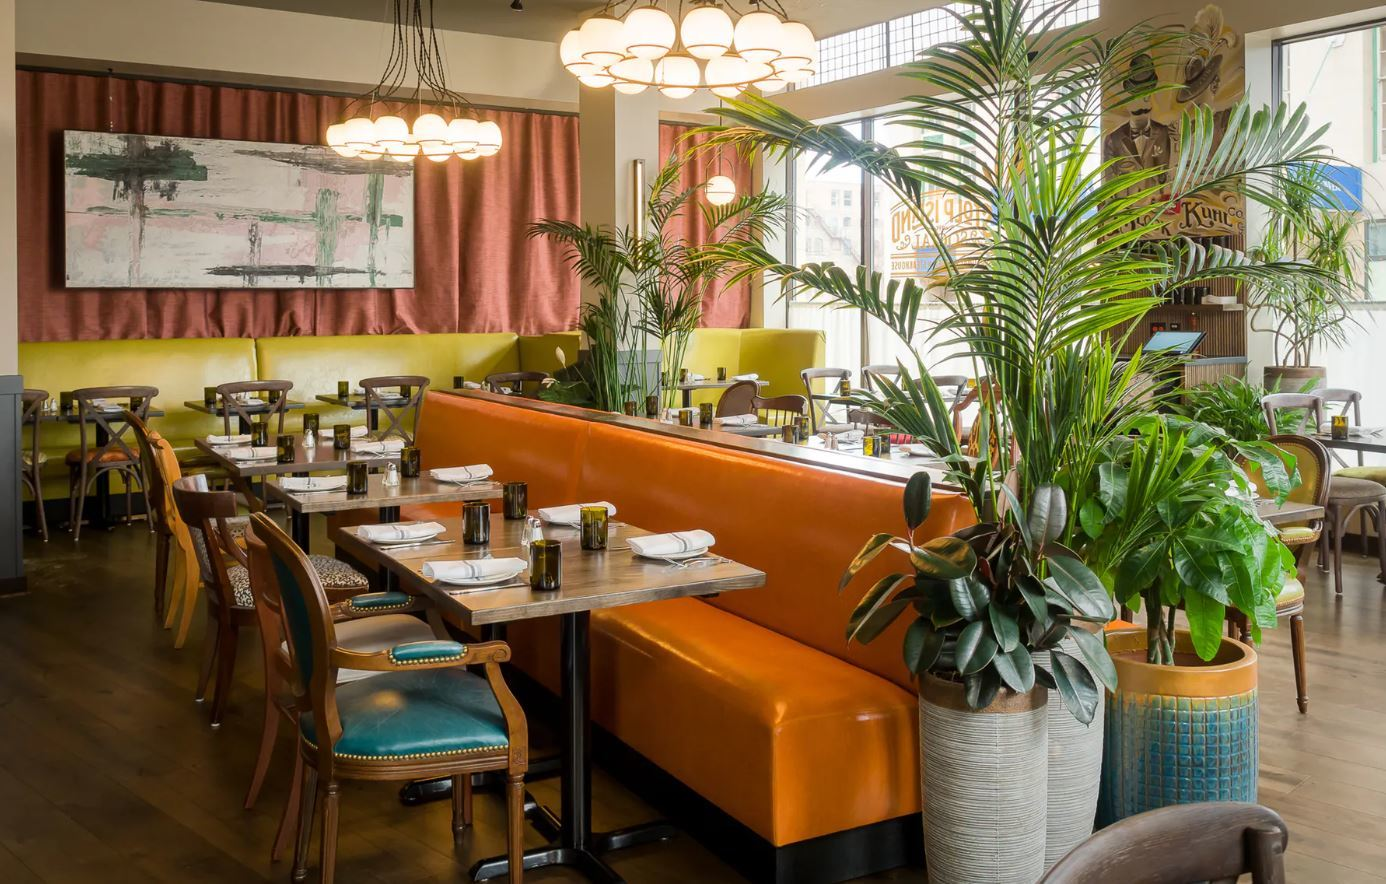 A bright and verdant dining room with colored booths, wooden chairs, and hanging art.